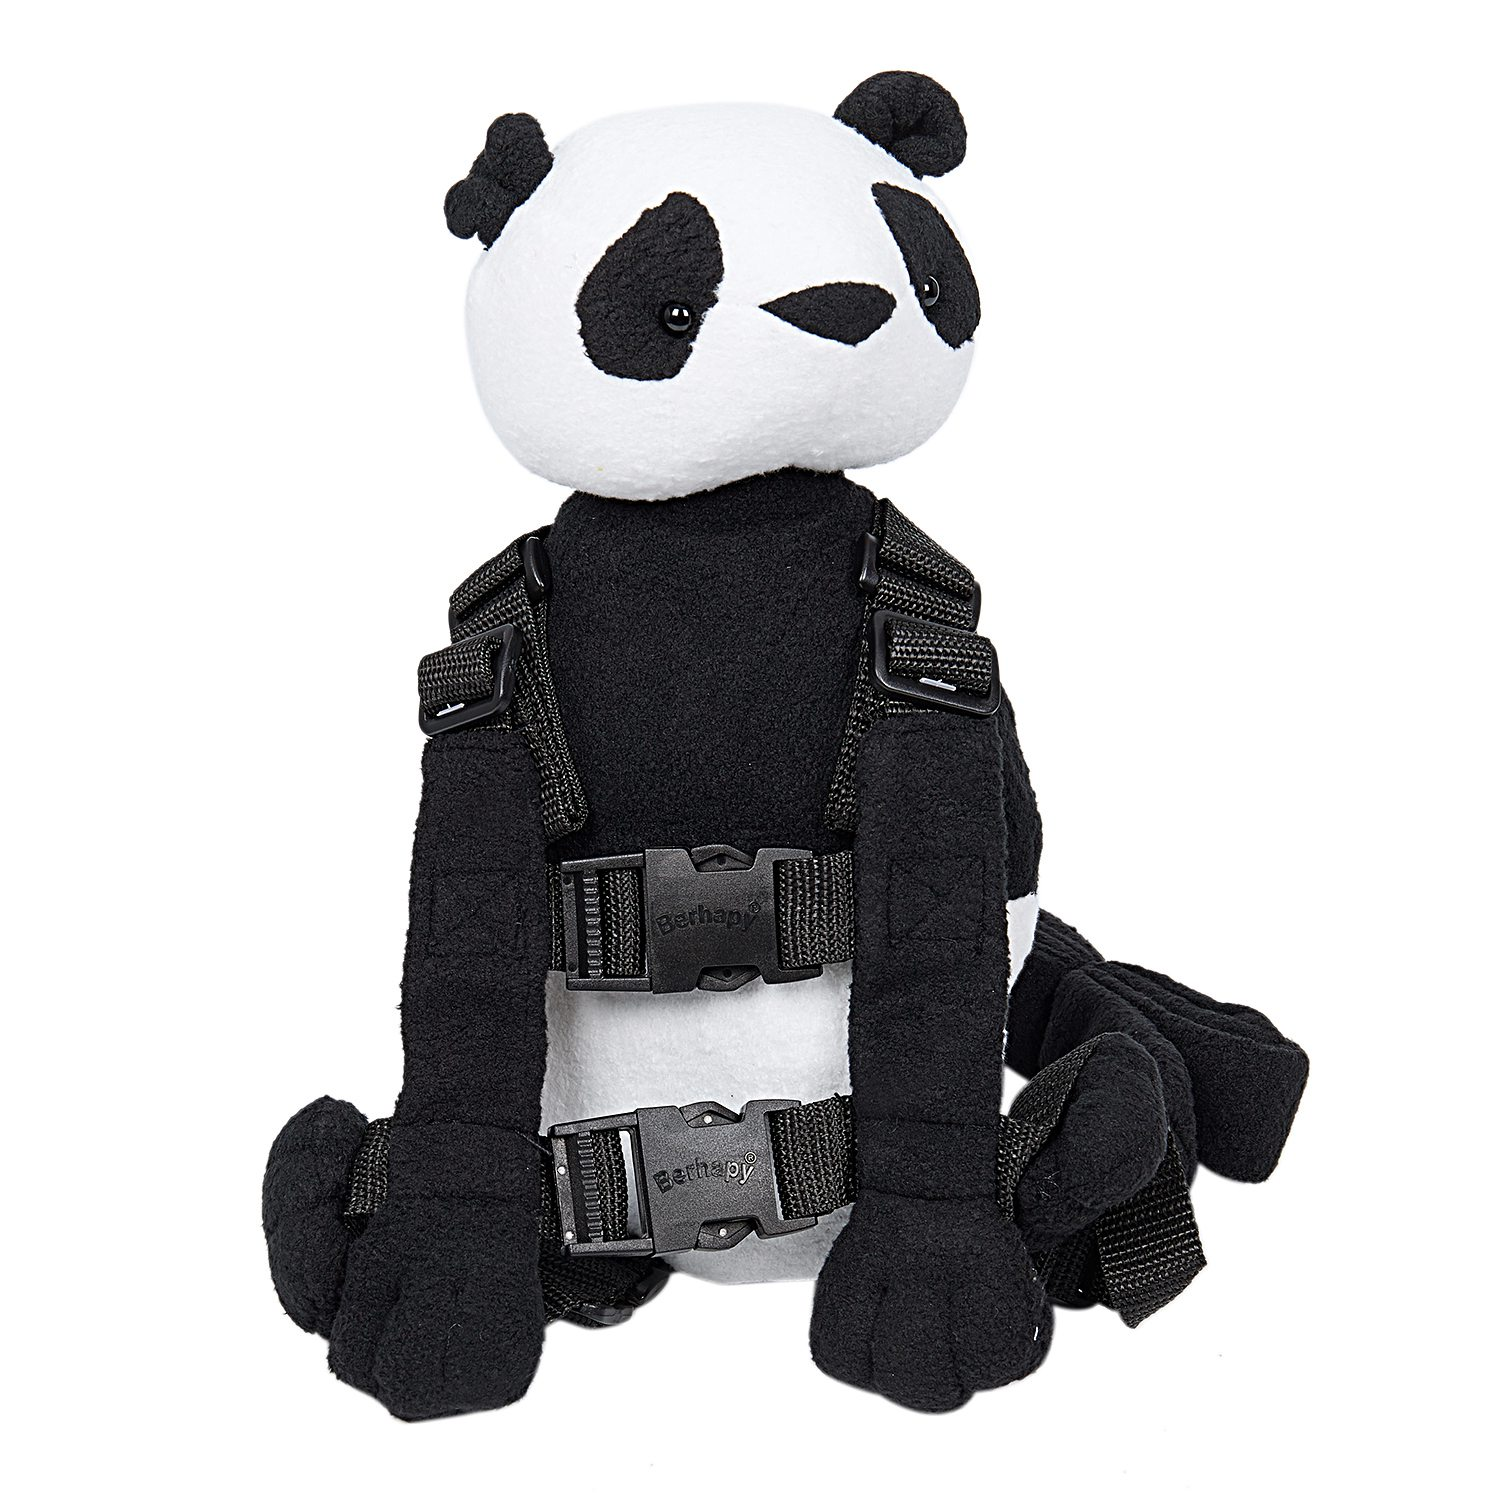 Panda Safety Harness Leash Strap Baby Kids Toddler Walking Cosplay Backpack Reins Bag